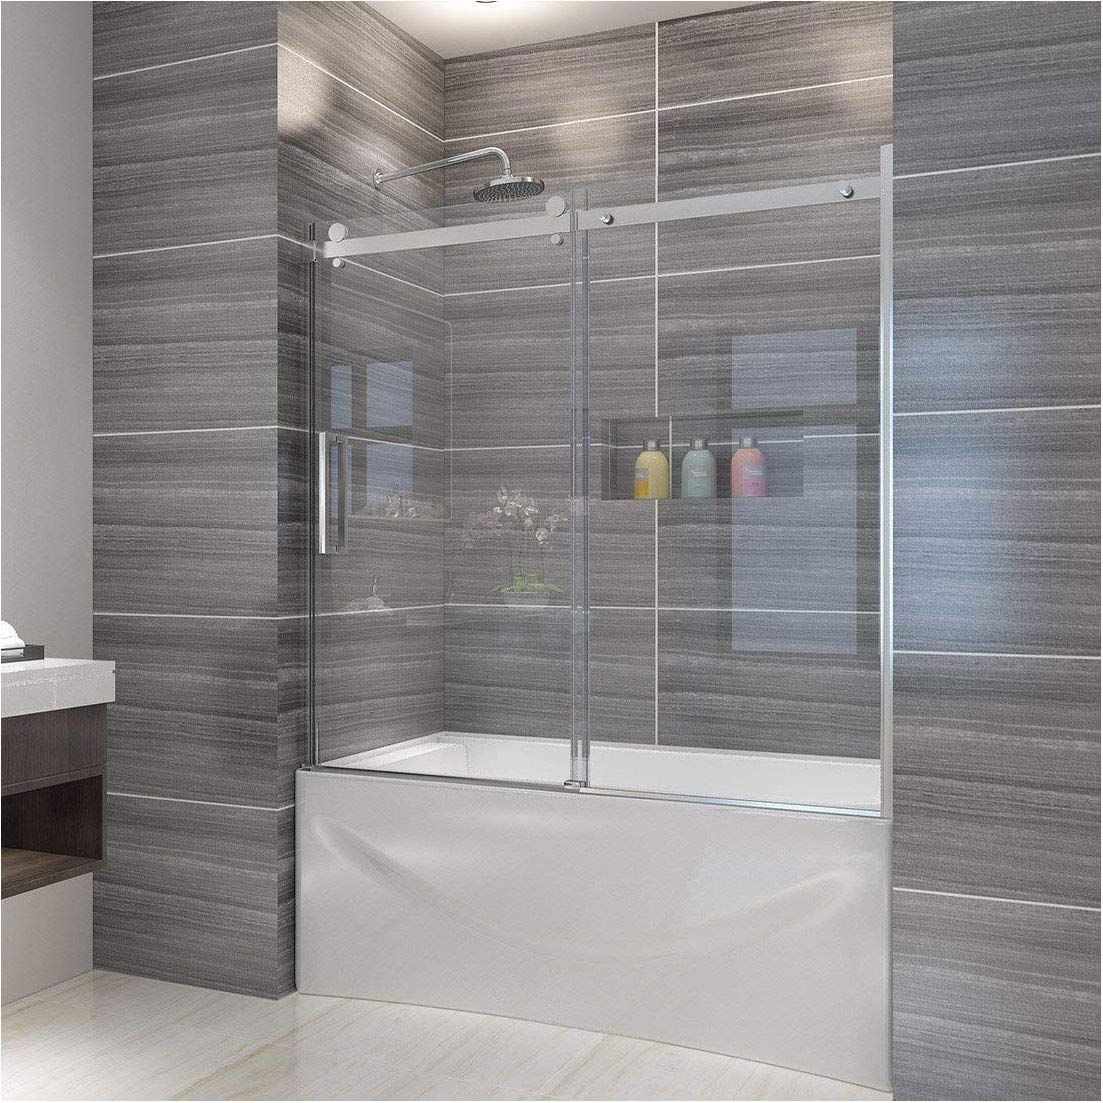 Awesome Bathroom Shower Glass Panel Bathtub Doors Bathtub Shower Doors Glass Tub